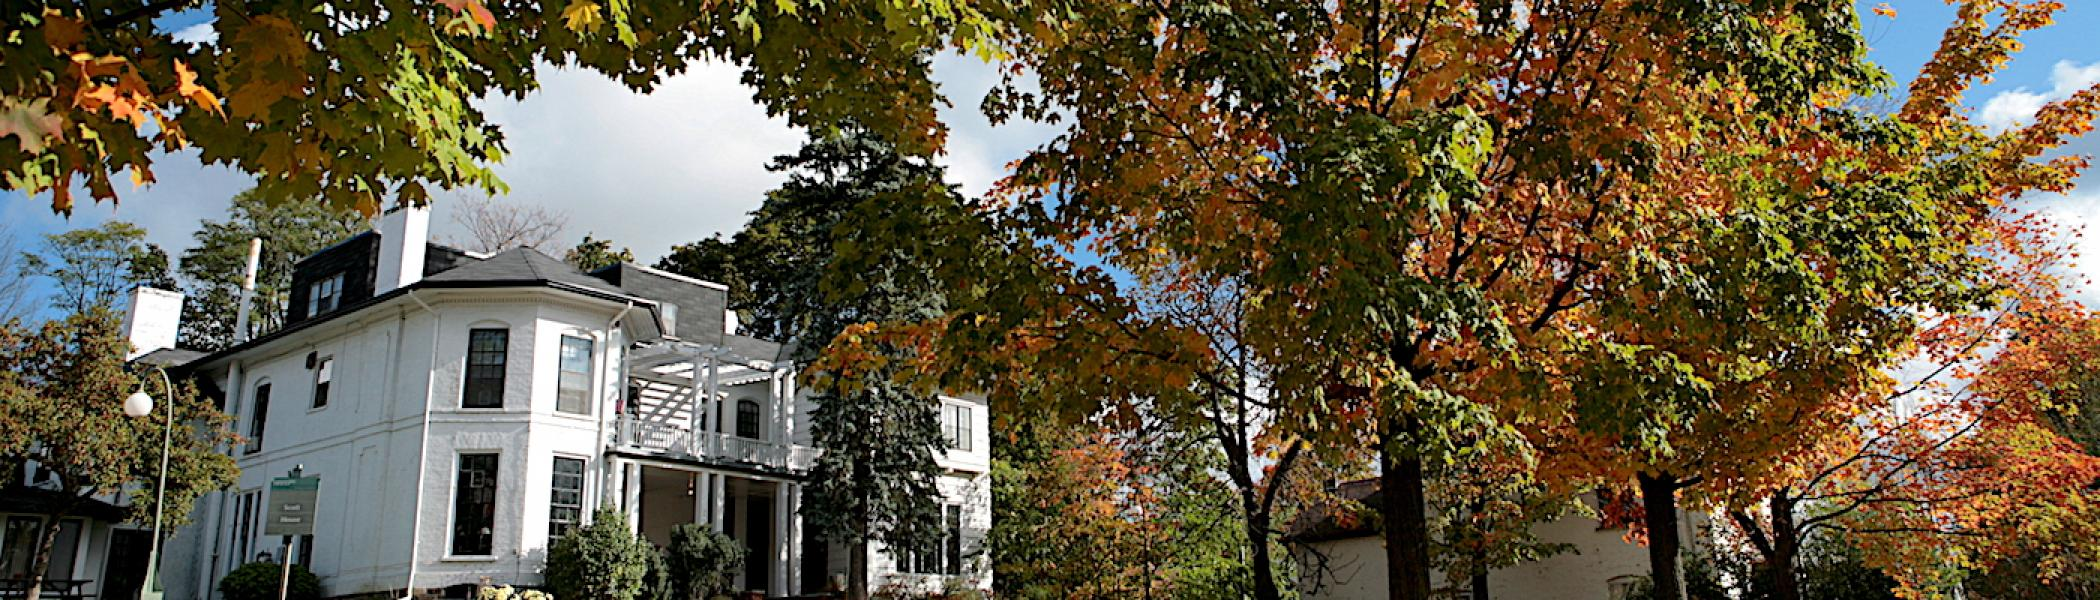 A view of Scott House at Traill College in the fall